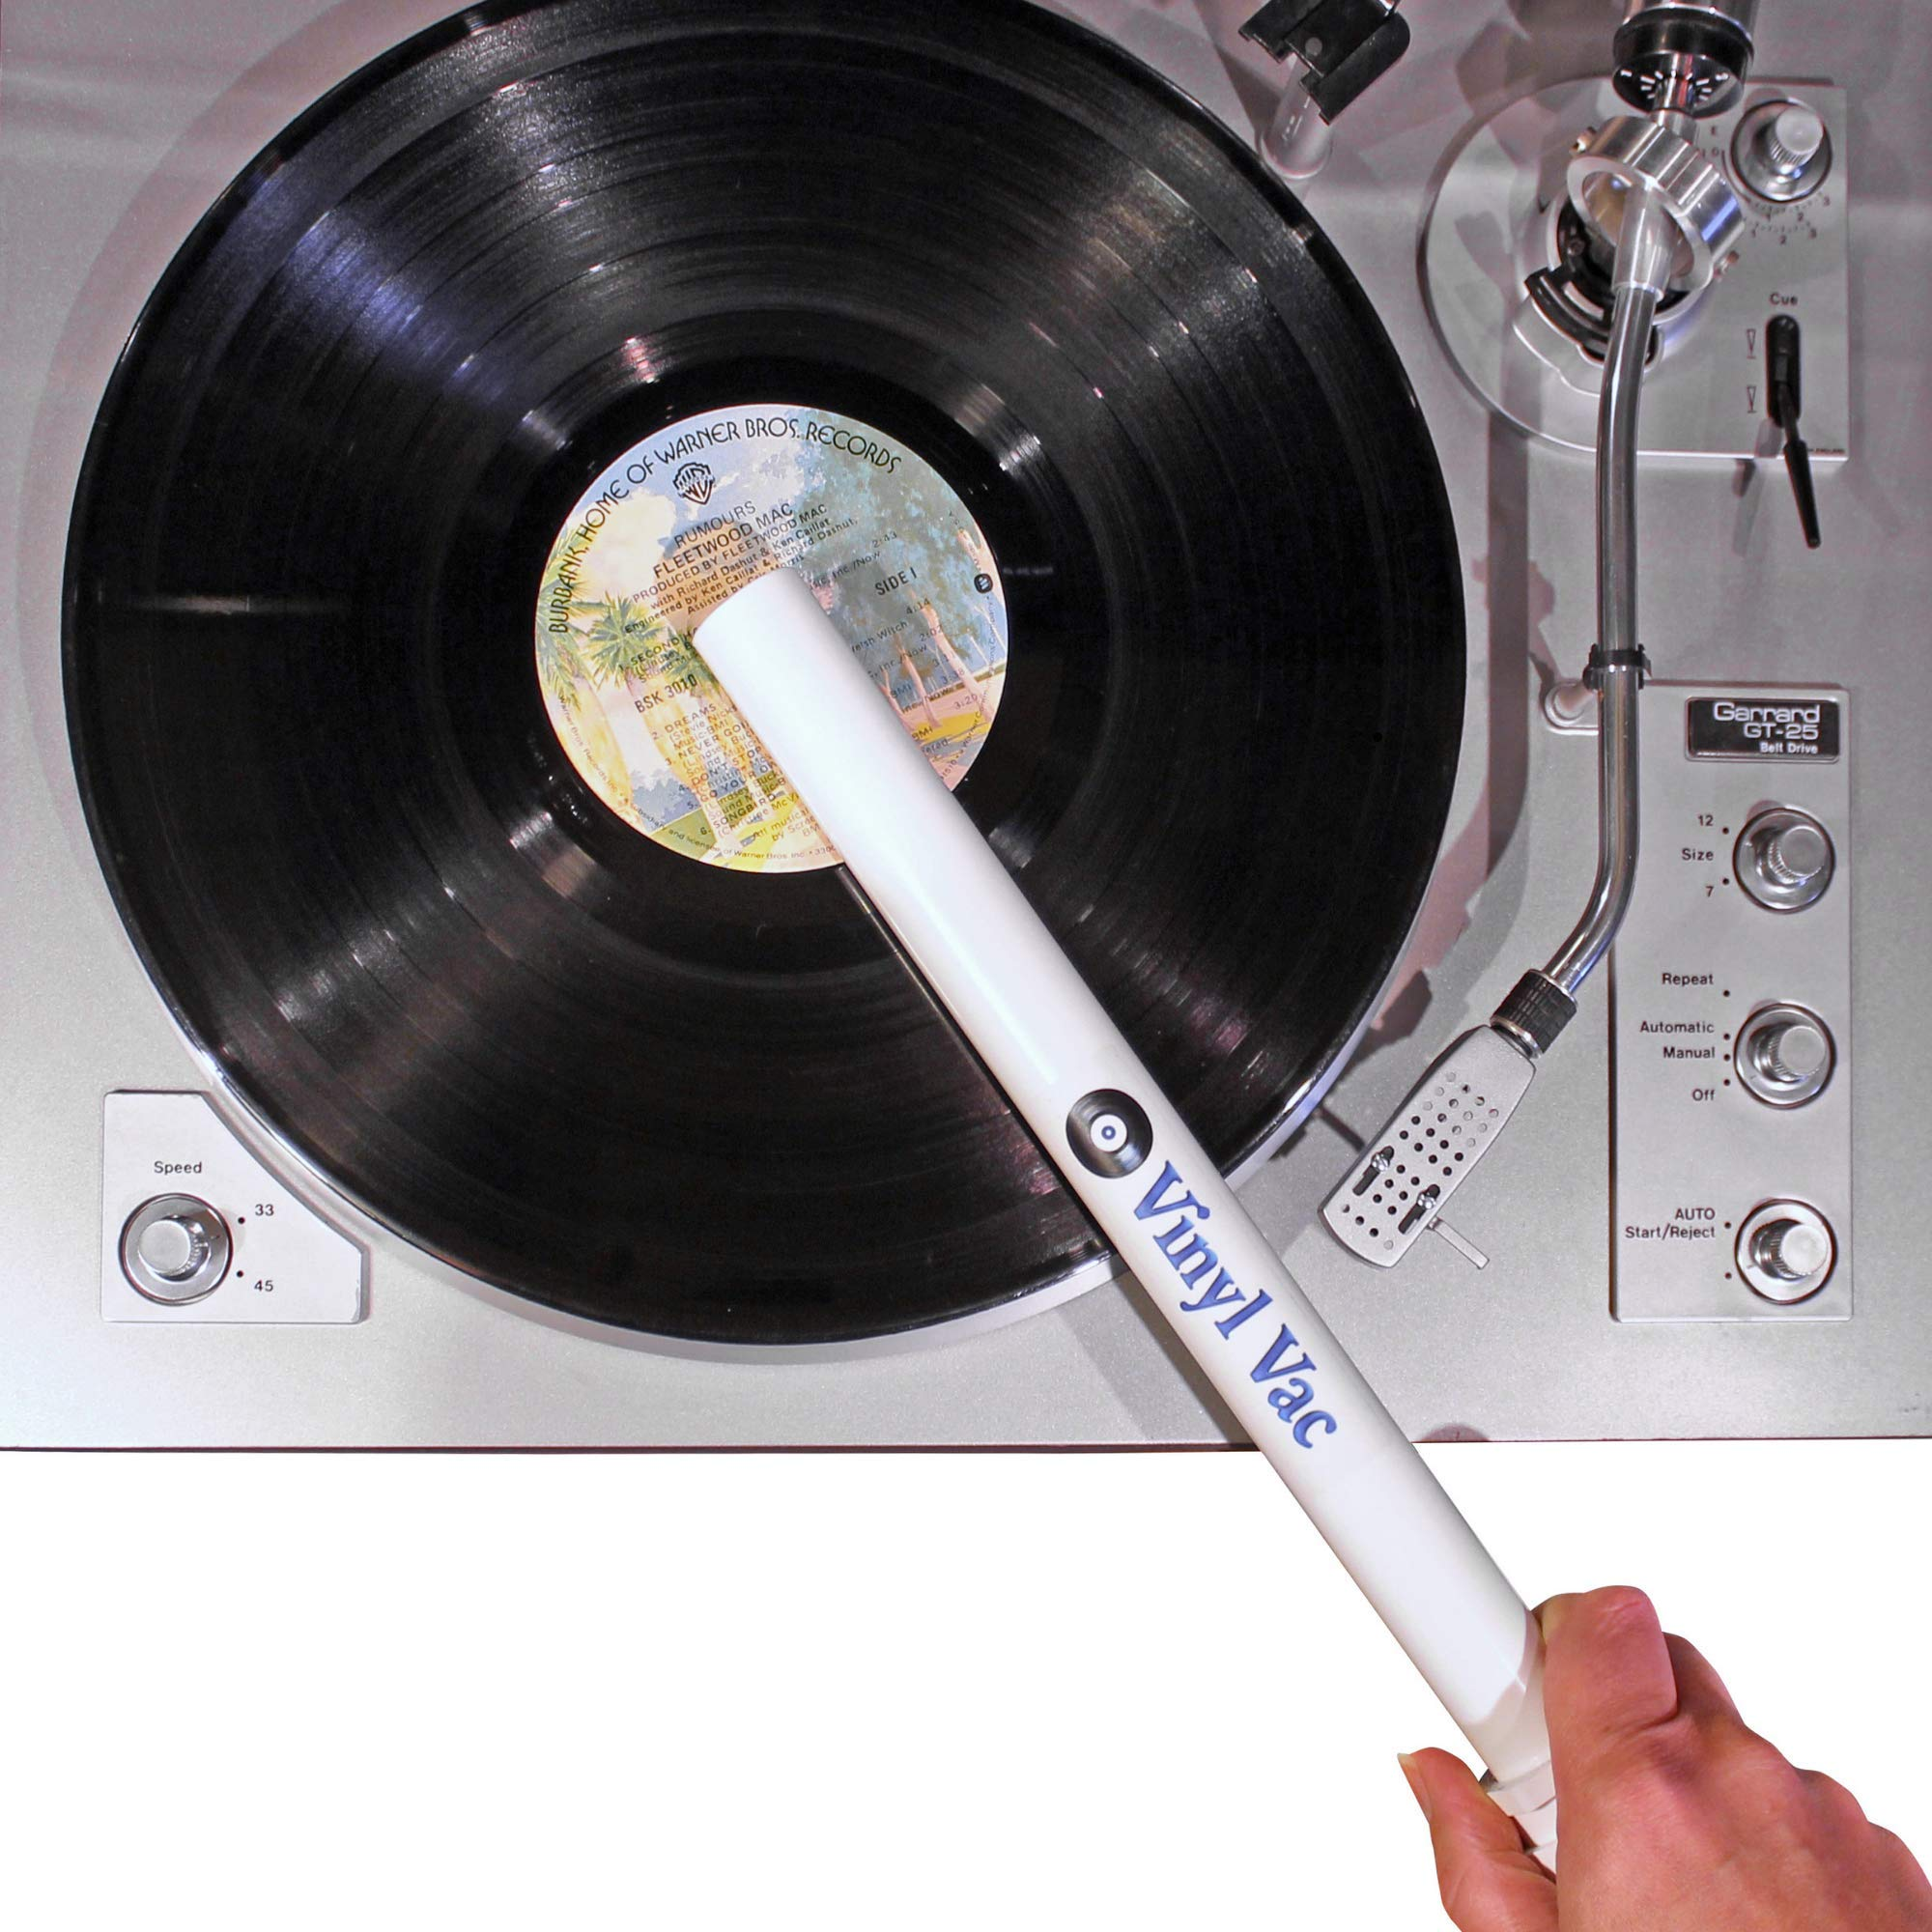 Vinyl Vac 33 - Vinyl Record Cleaning Kit - Record Vacuum Wand for Deep Cleaning (Attaches to Your Vacuum Hose)